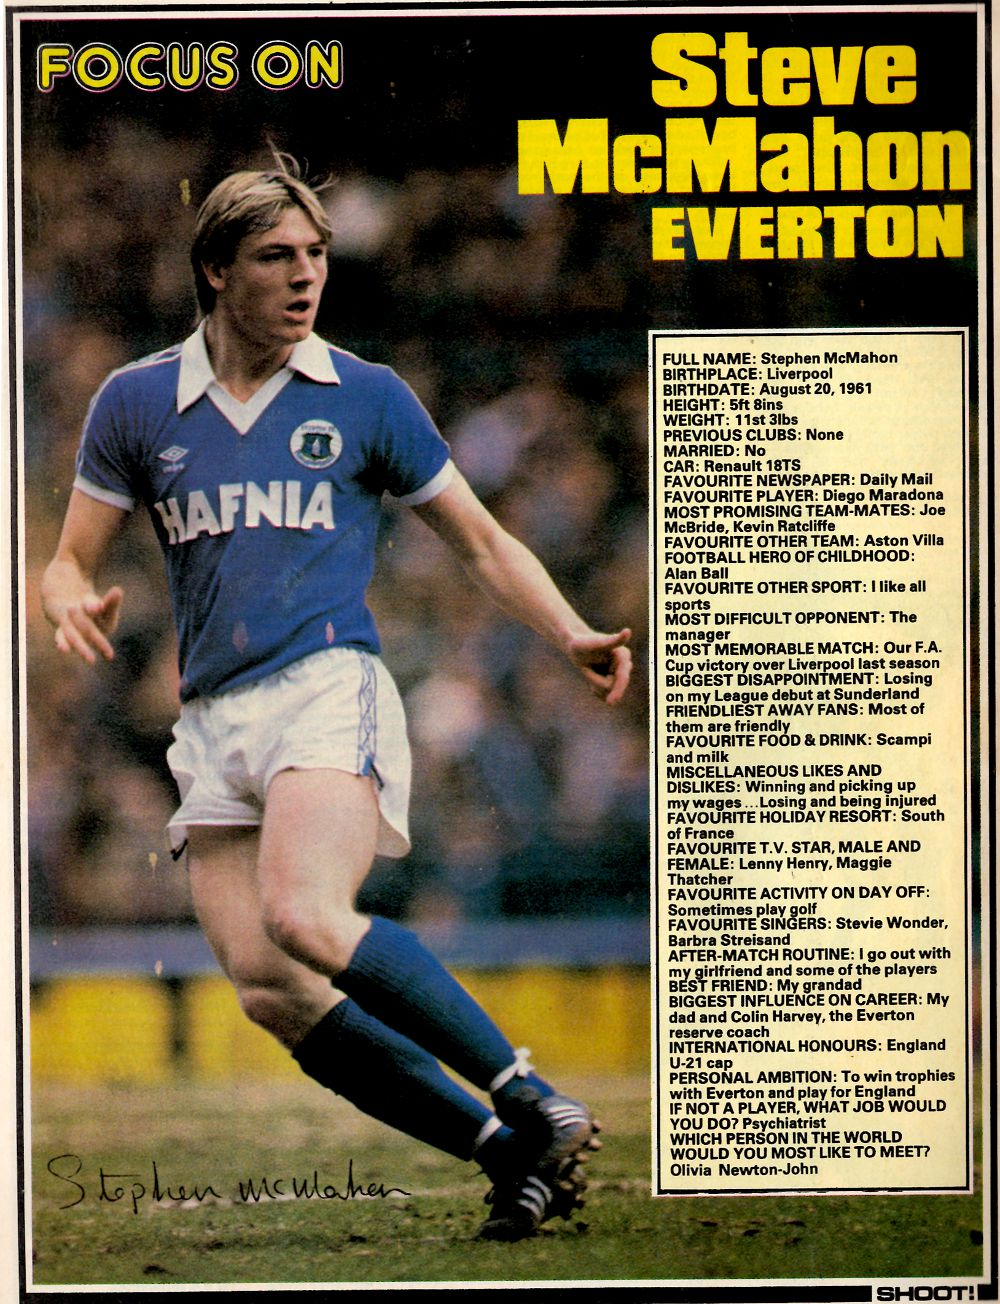 Shoot! focus on Everton's McMahon - 1981